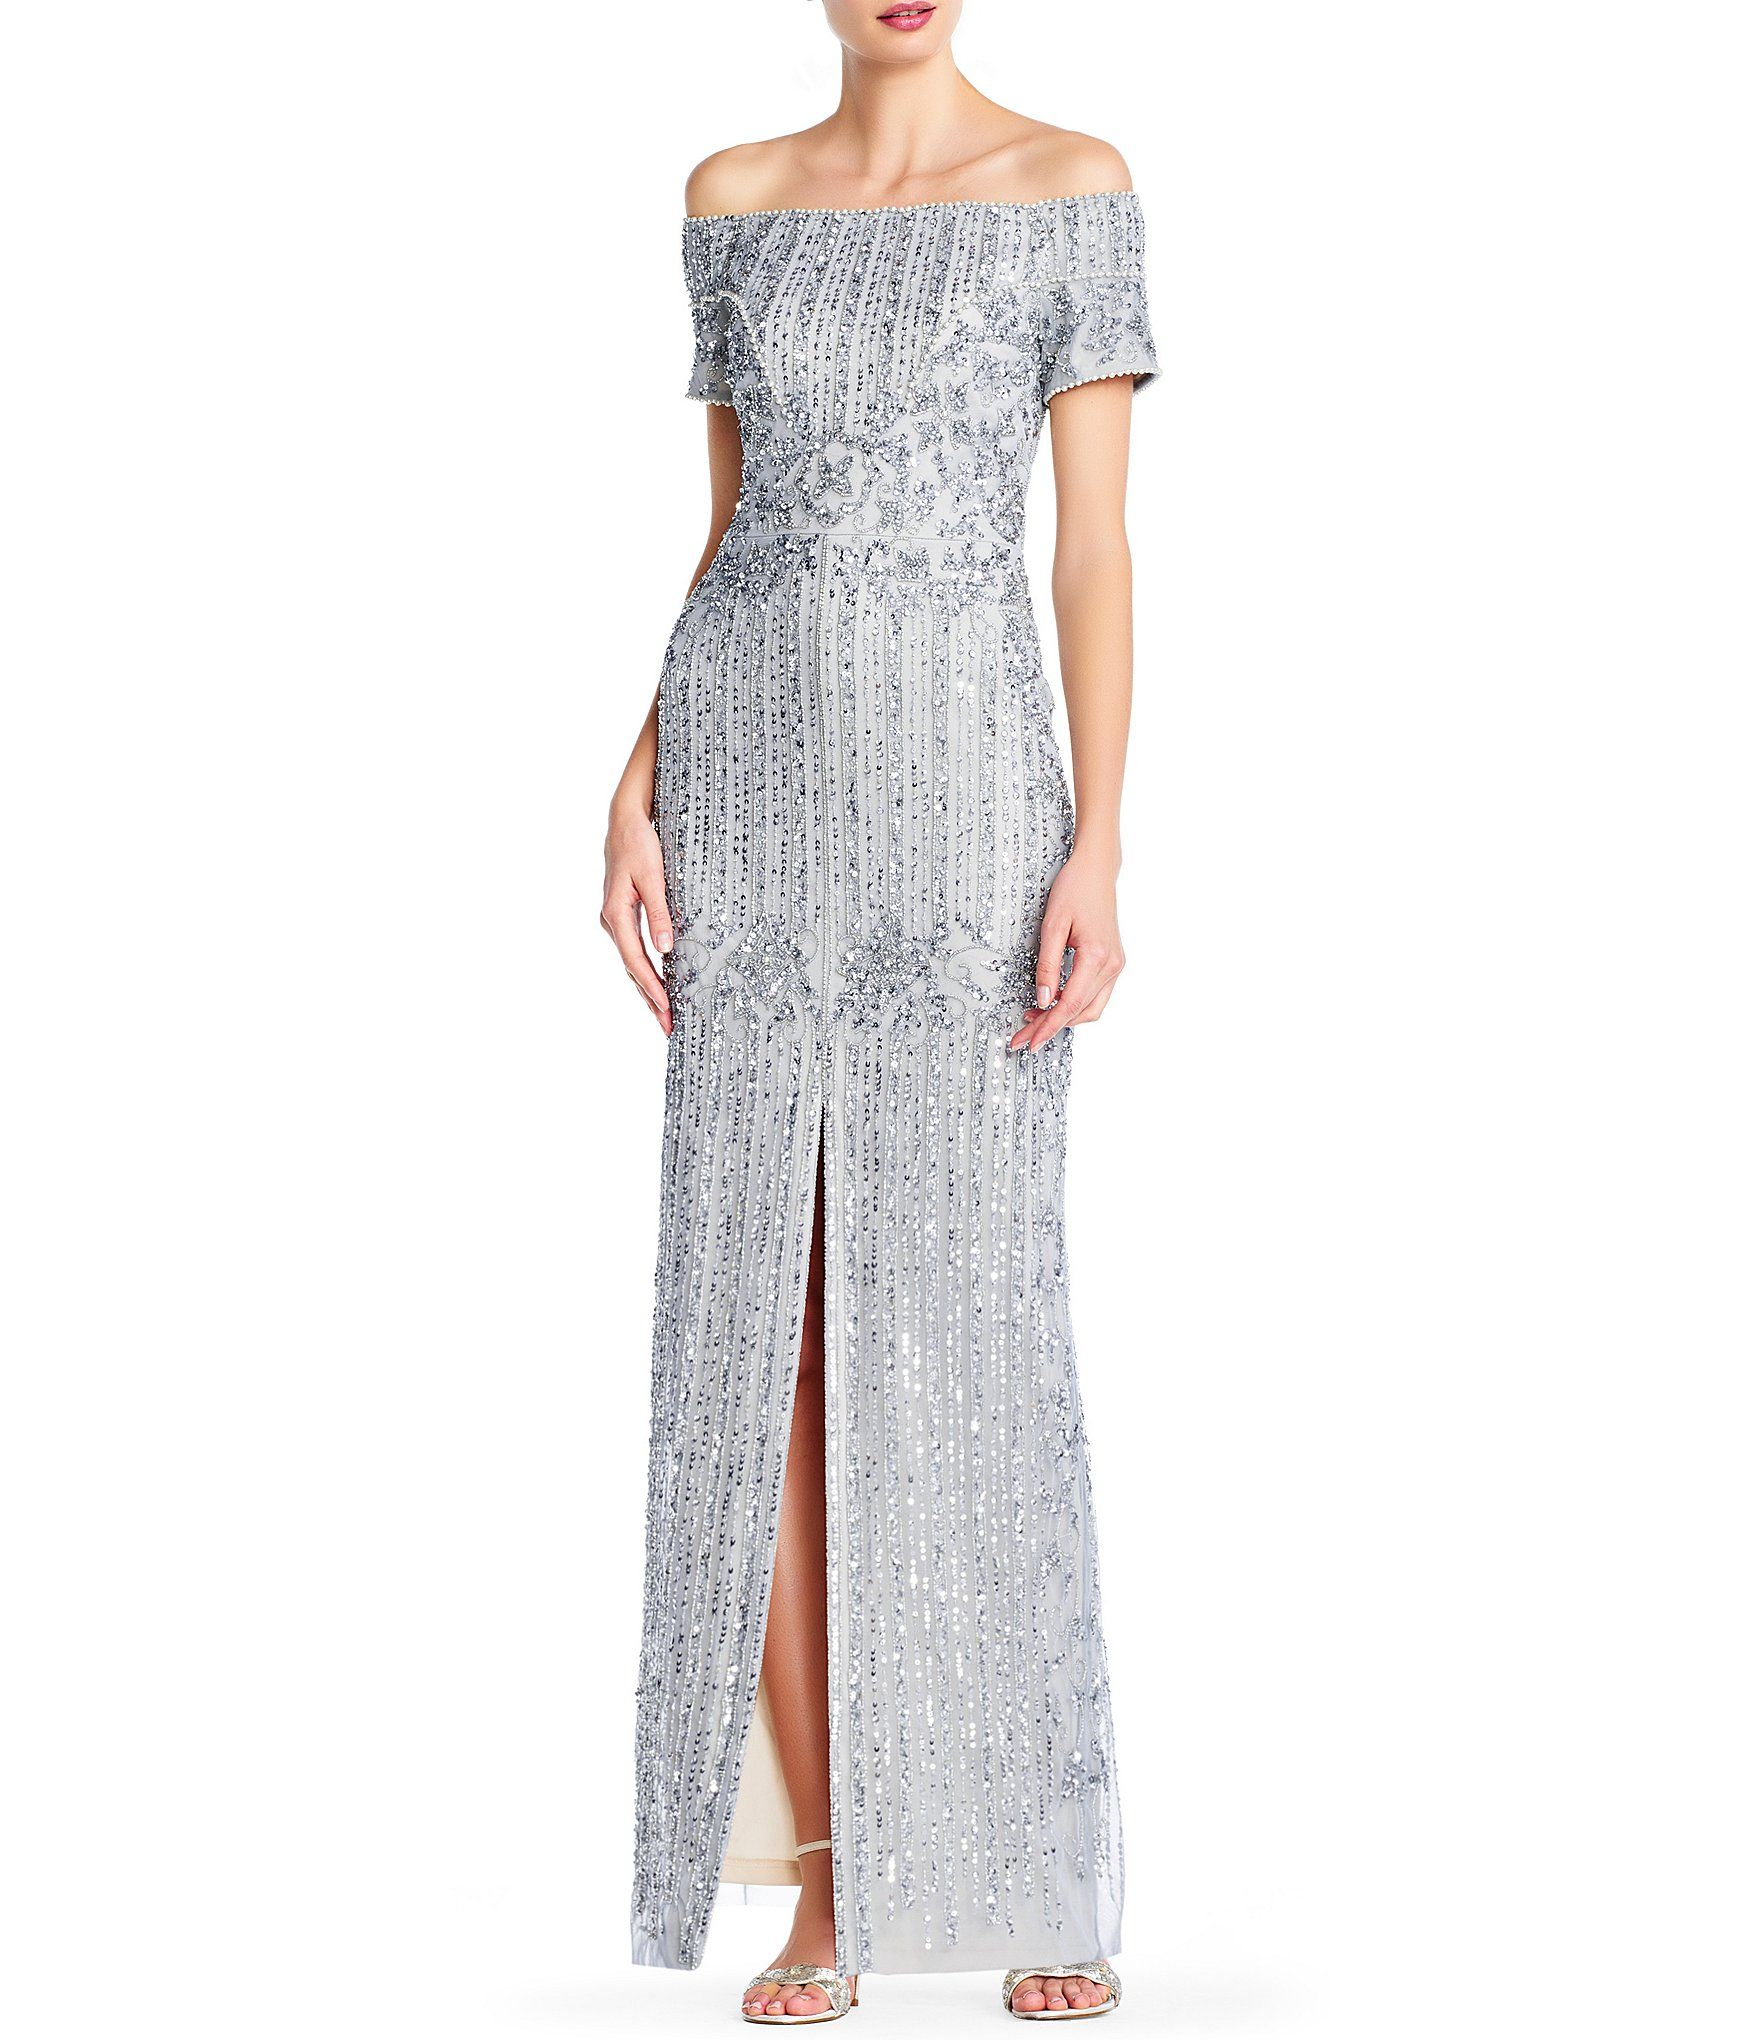 13+ Adrianna papell off the shoulder dress info